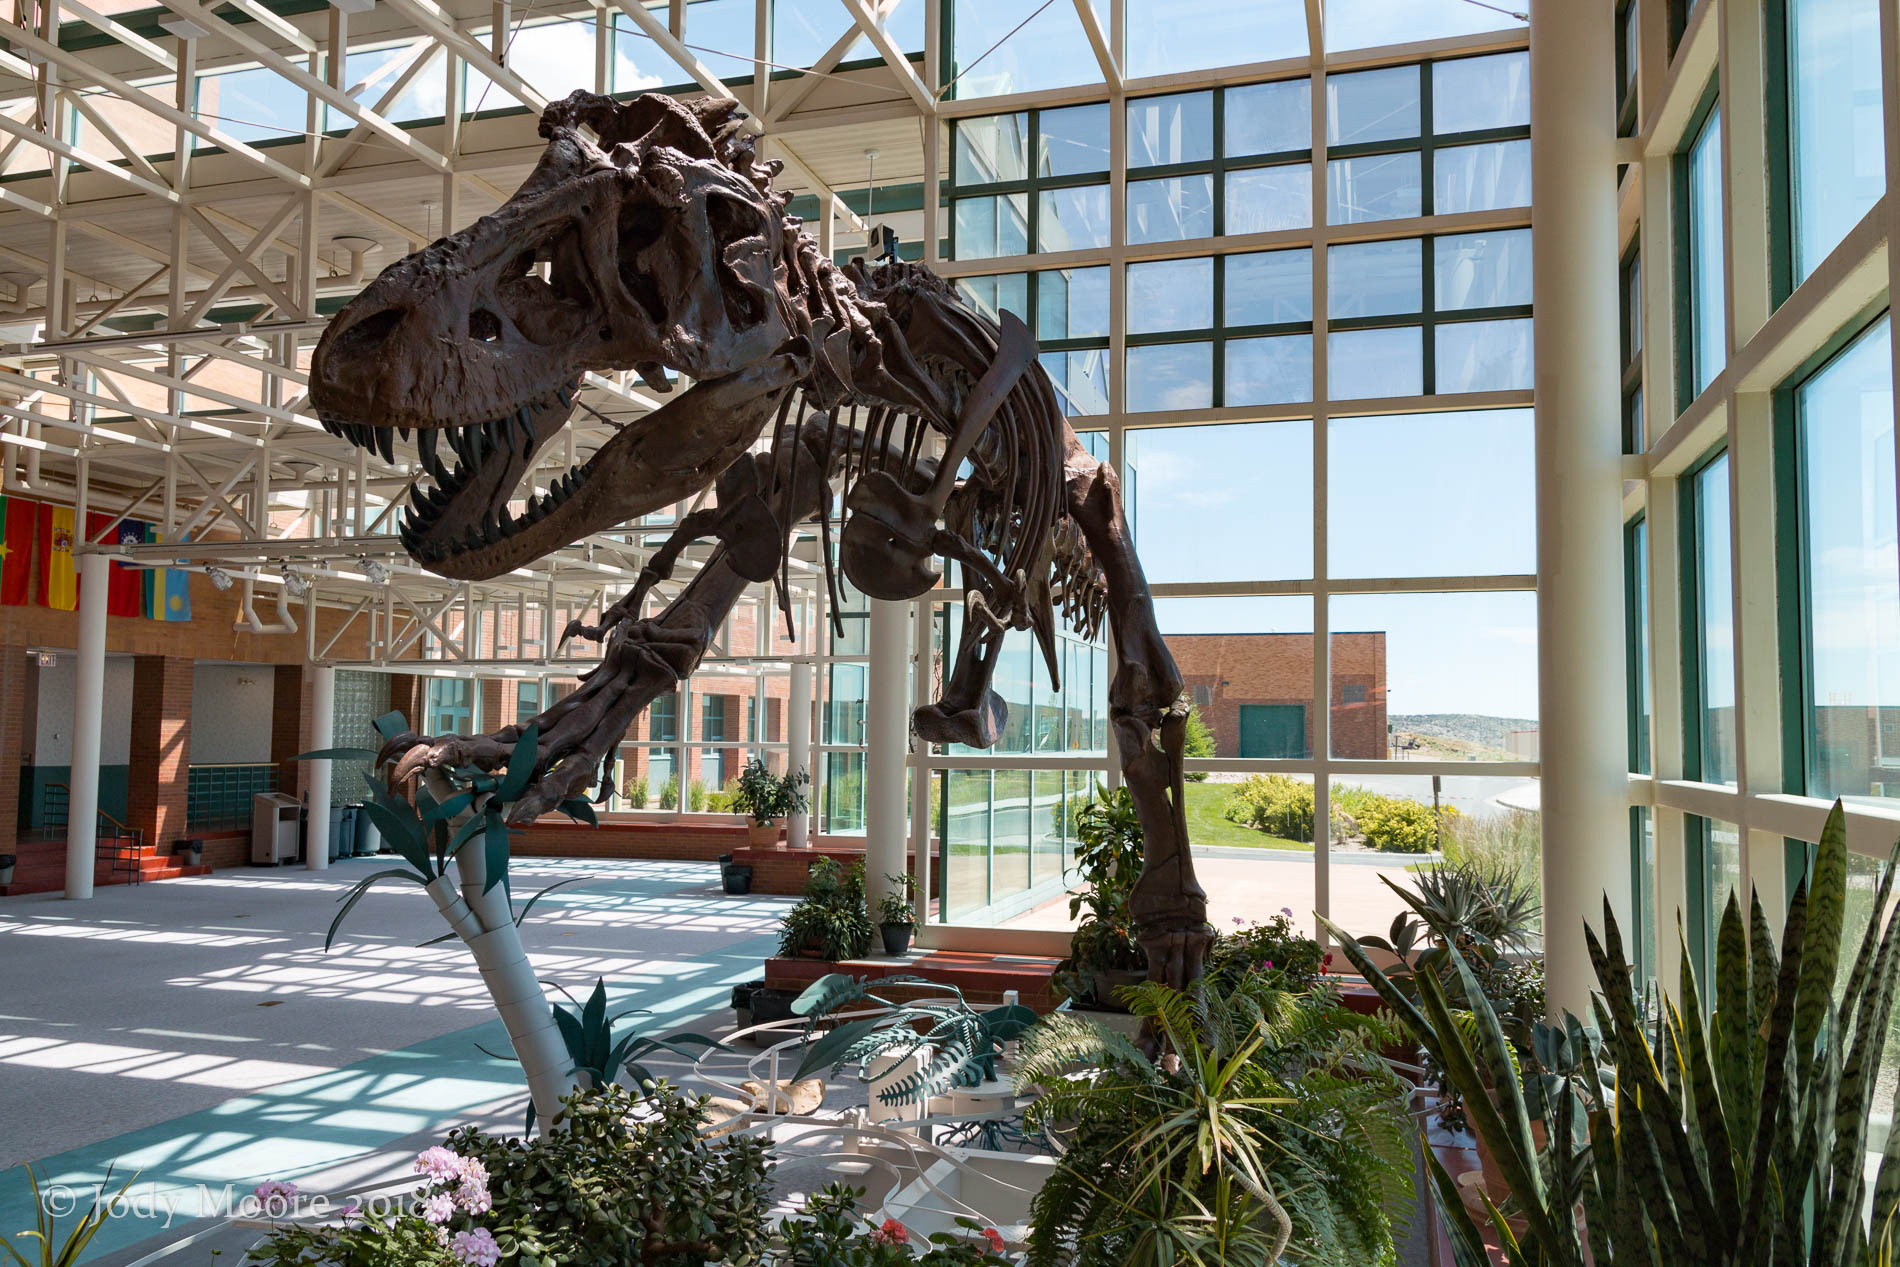 Another look at the cast of AMNH 5027 at WWCC in Rock Springs, WY. Though these photos are from last year, the cast provided my first exposure to T.rex, about 15 years prior to the photo.